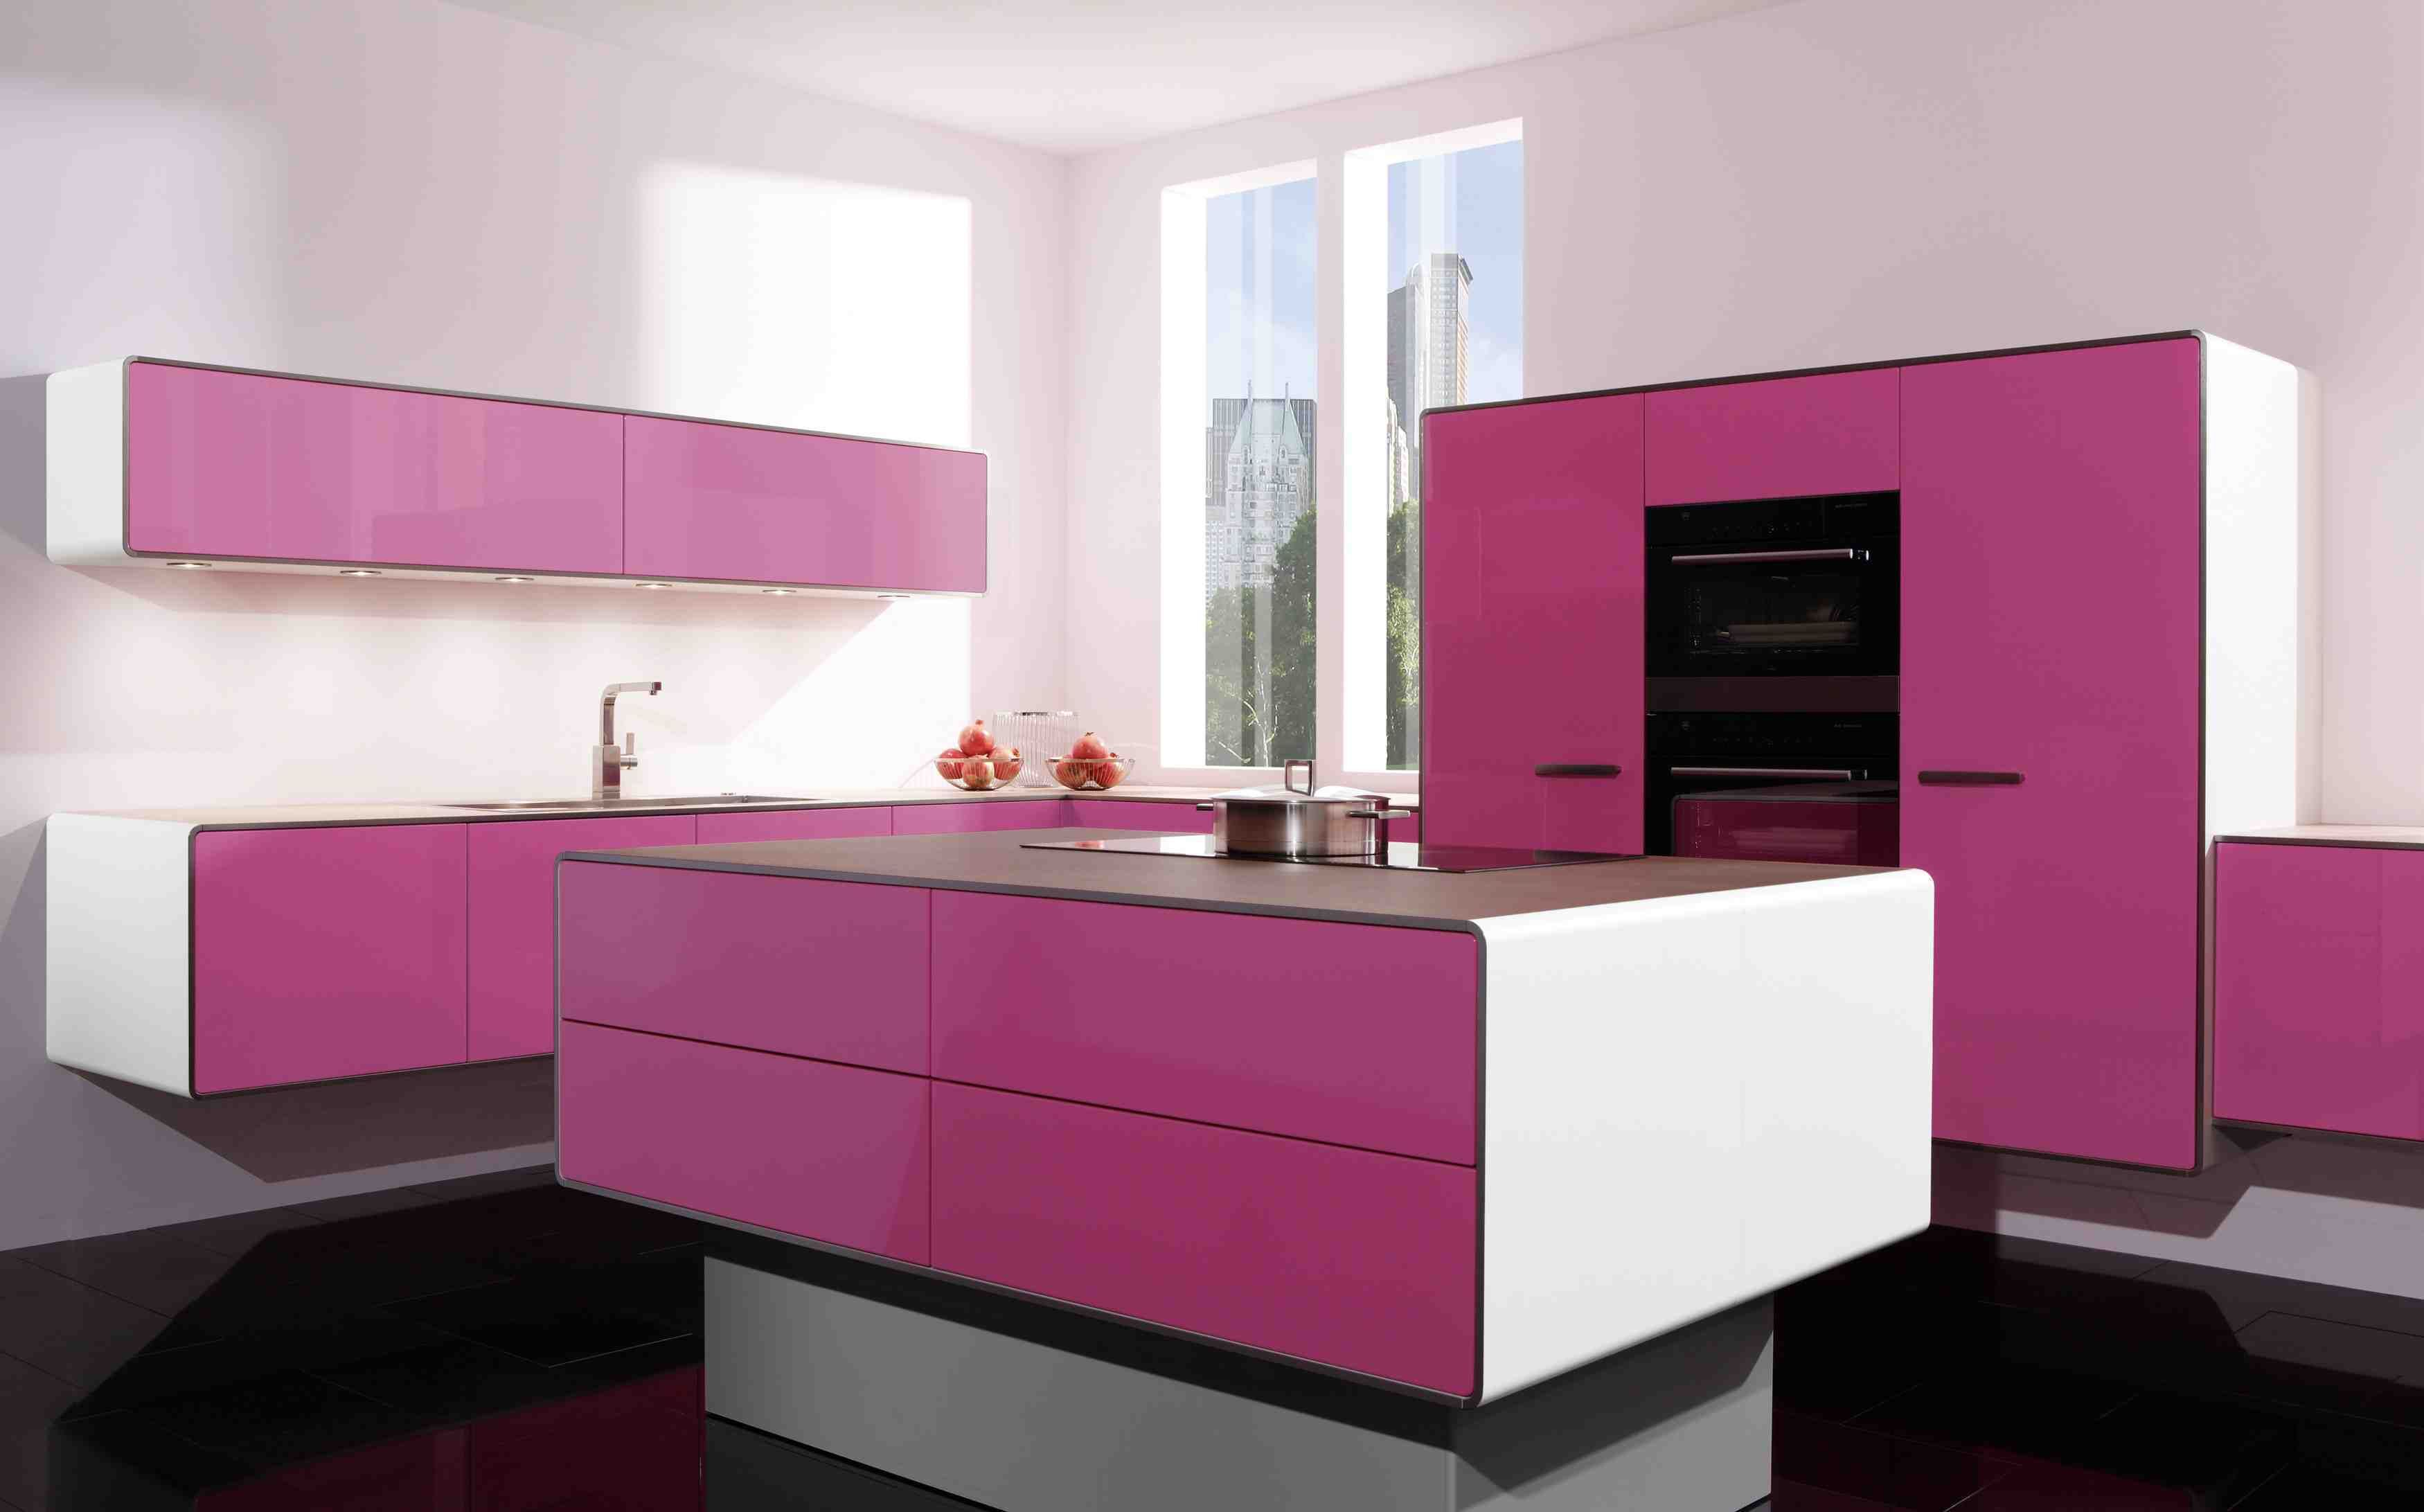 Imagine Owning A Very Lucrative Business Selling Our Premium Luxury German Kitchens Out Of Your Own German Kitchen Design Modern Kitchen Design German Kitchen